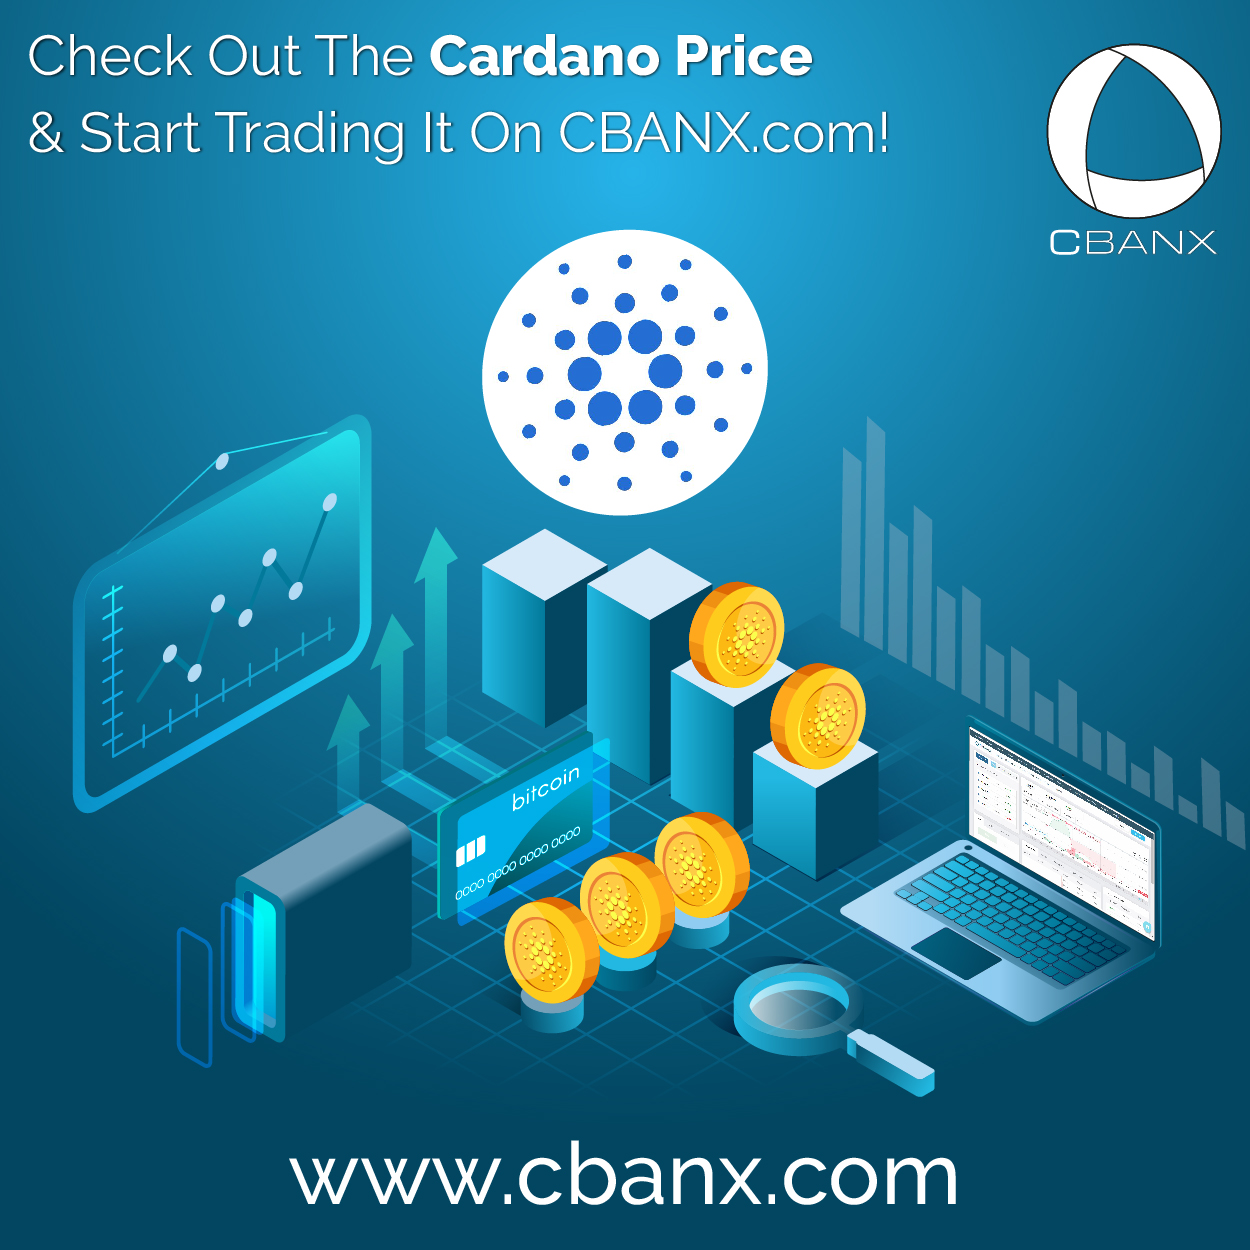 Check Out The Cardano Price & Start Trading It On CBANX.com!